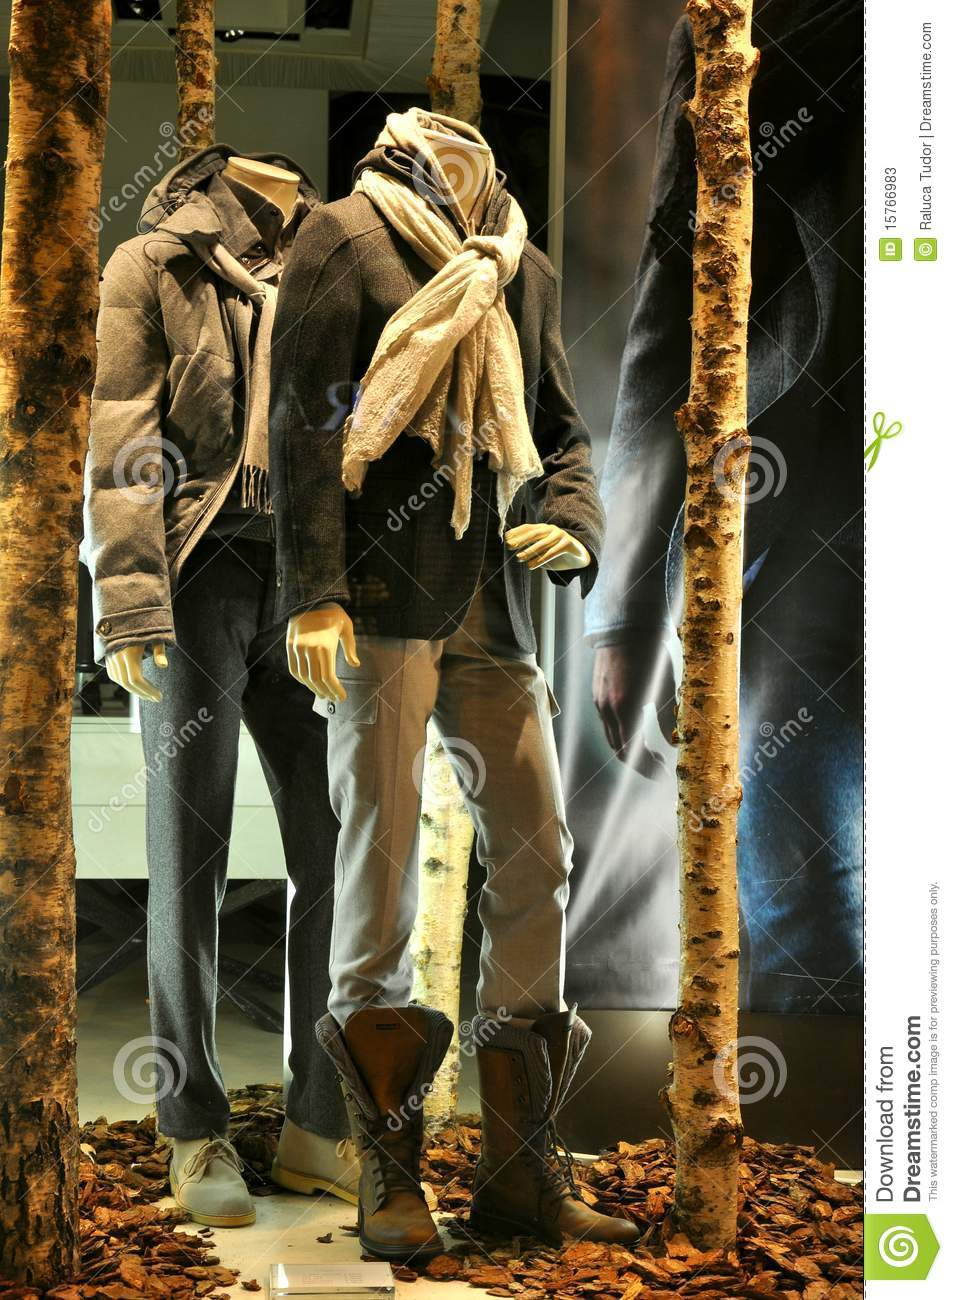 Man Fashion Store Window In Italy Stock Image Image